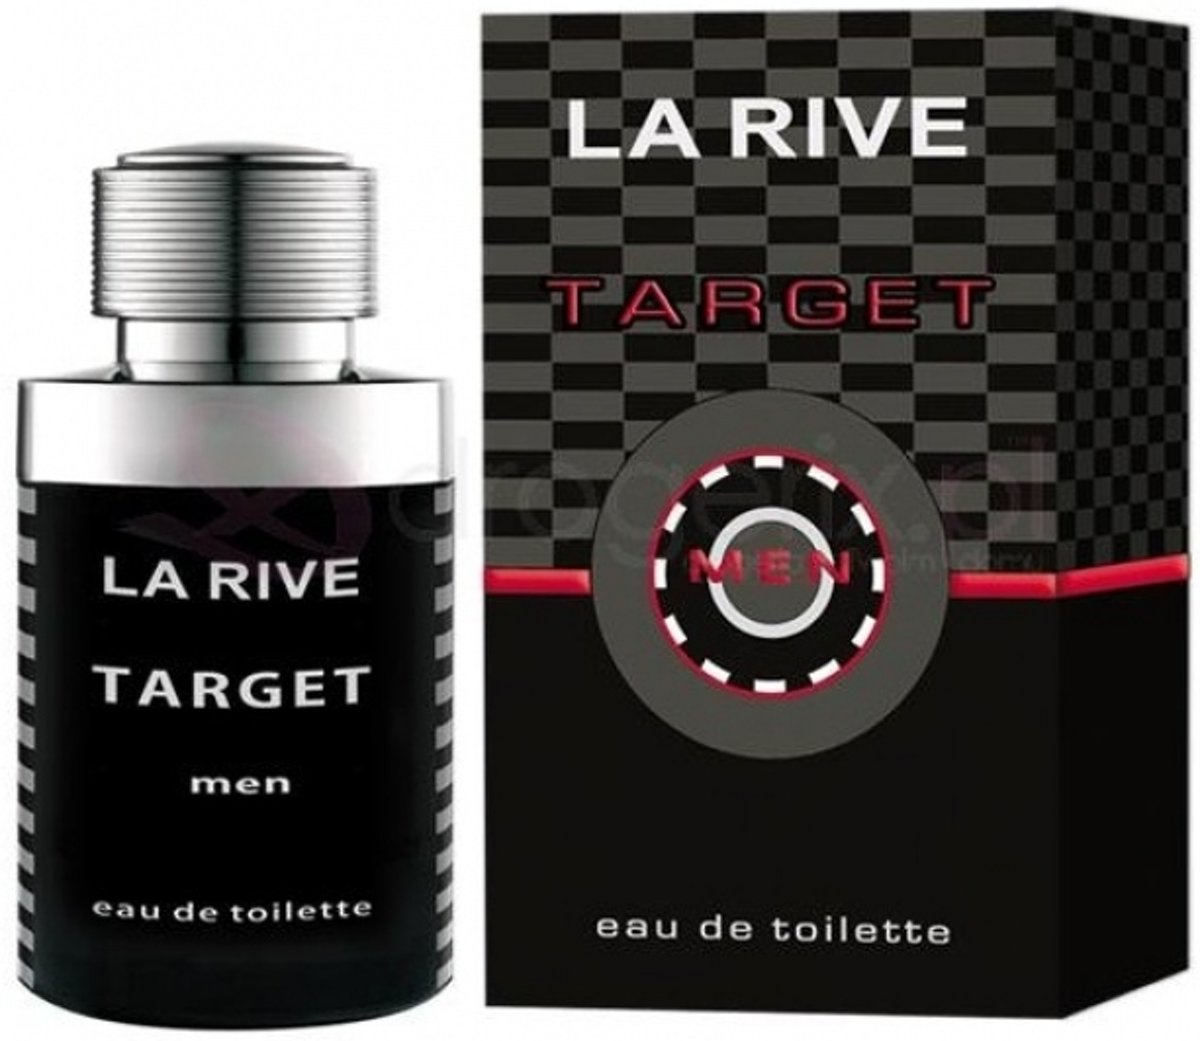 La Rive Target Eau de Toilette Spray 75 ml